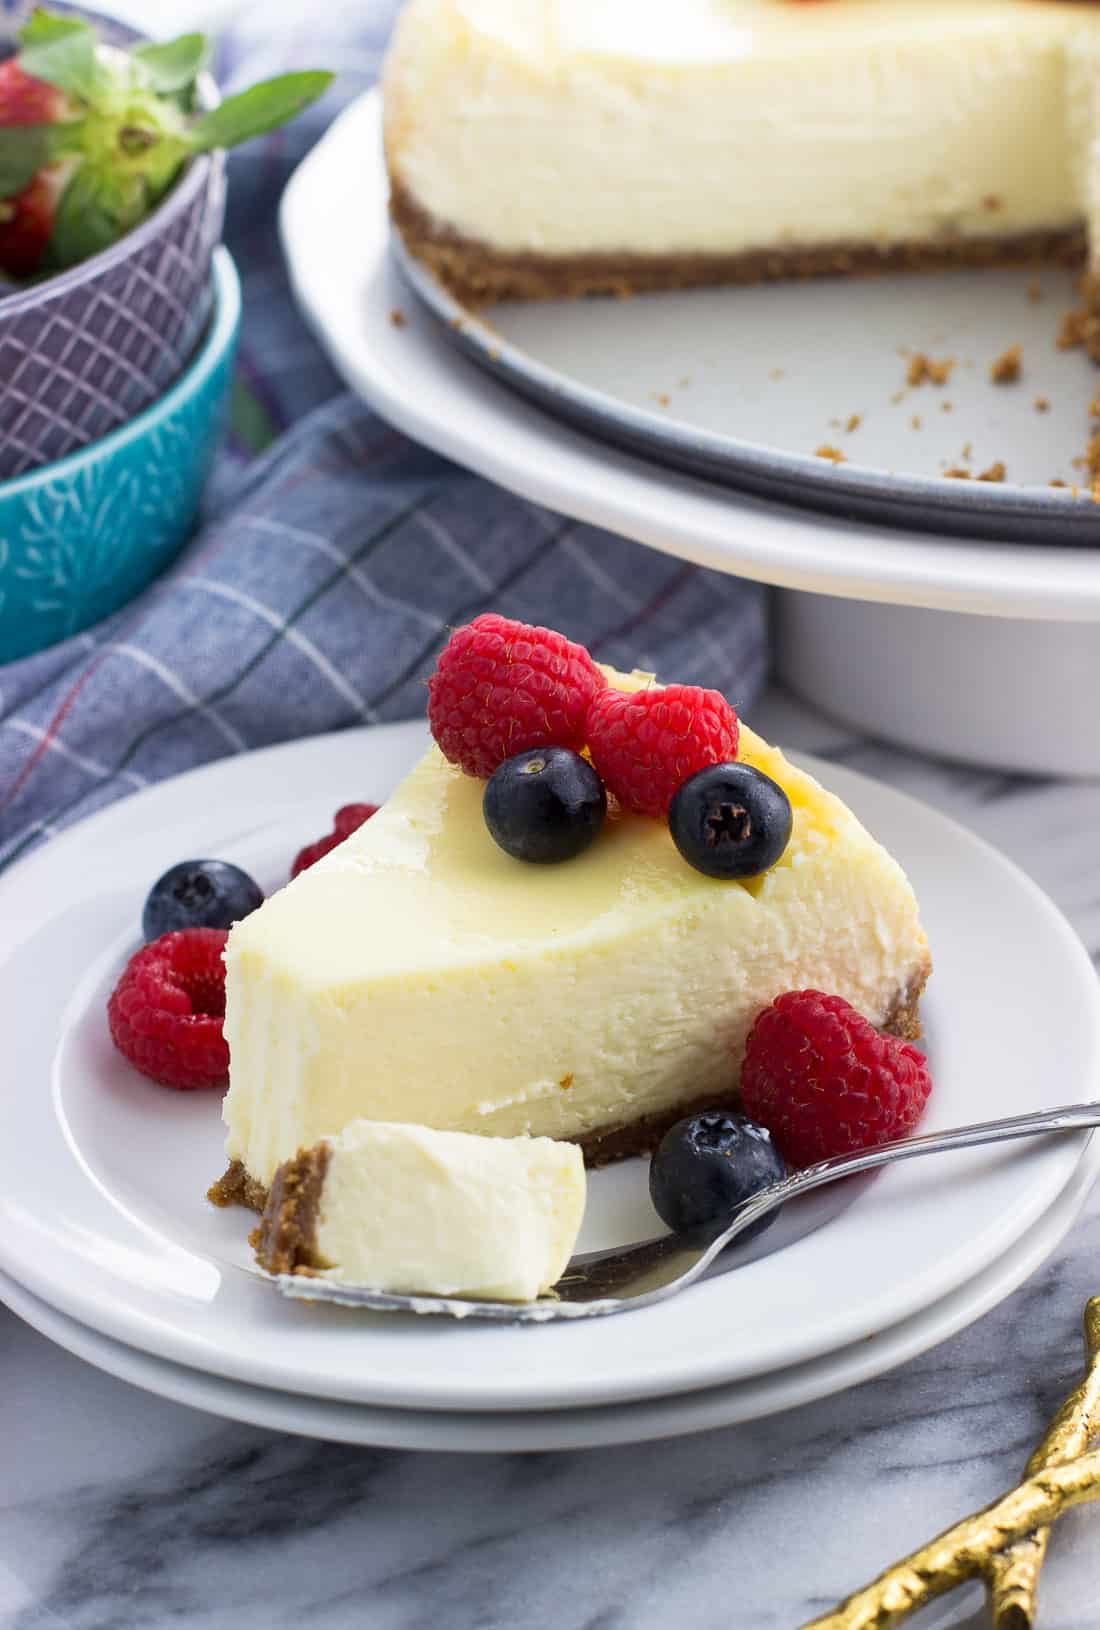 A slice of sour cream cheesecake on a dessert plate with a forkful taken out